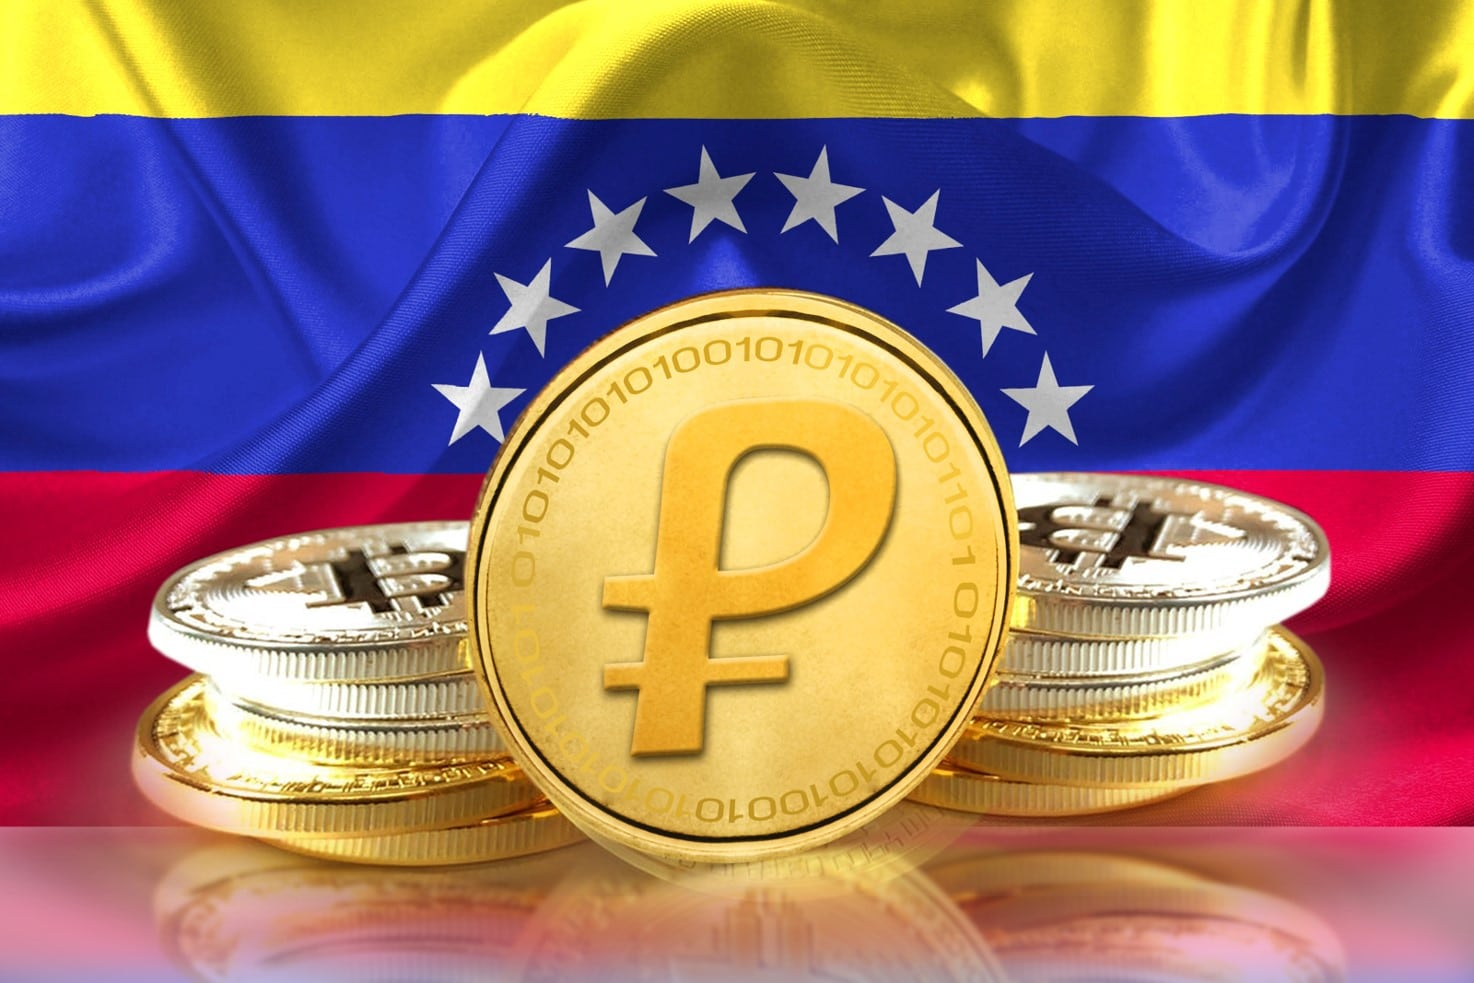 «The indexed petro»: The proposal that Venezuela is evaluating to curb hyperinflation